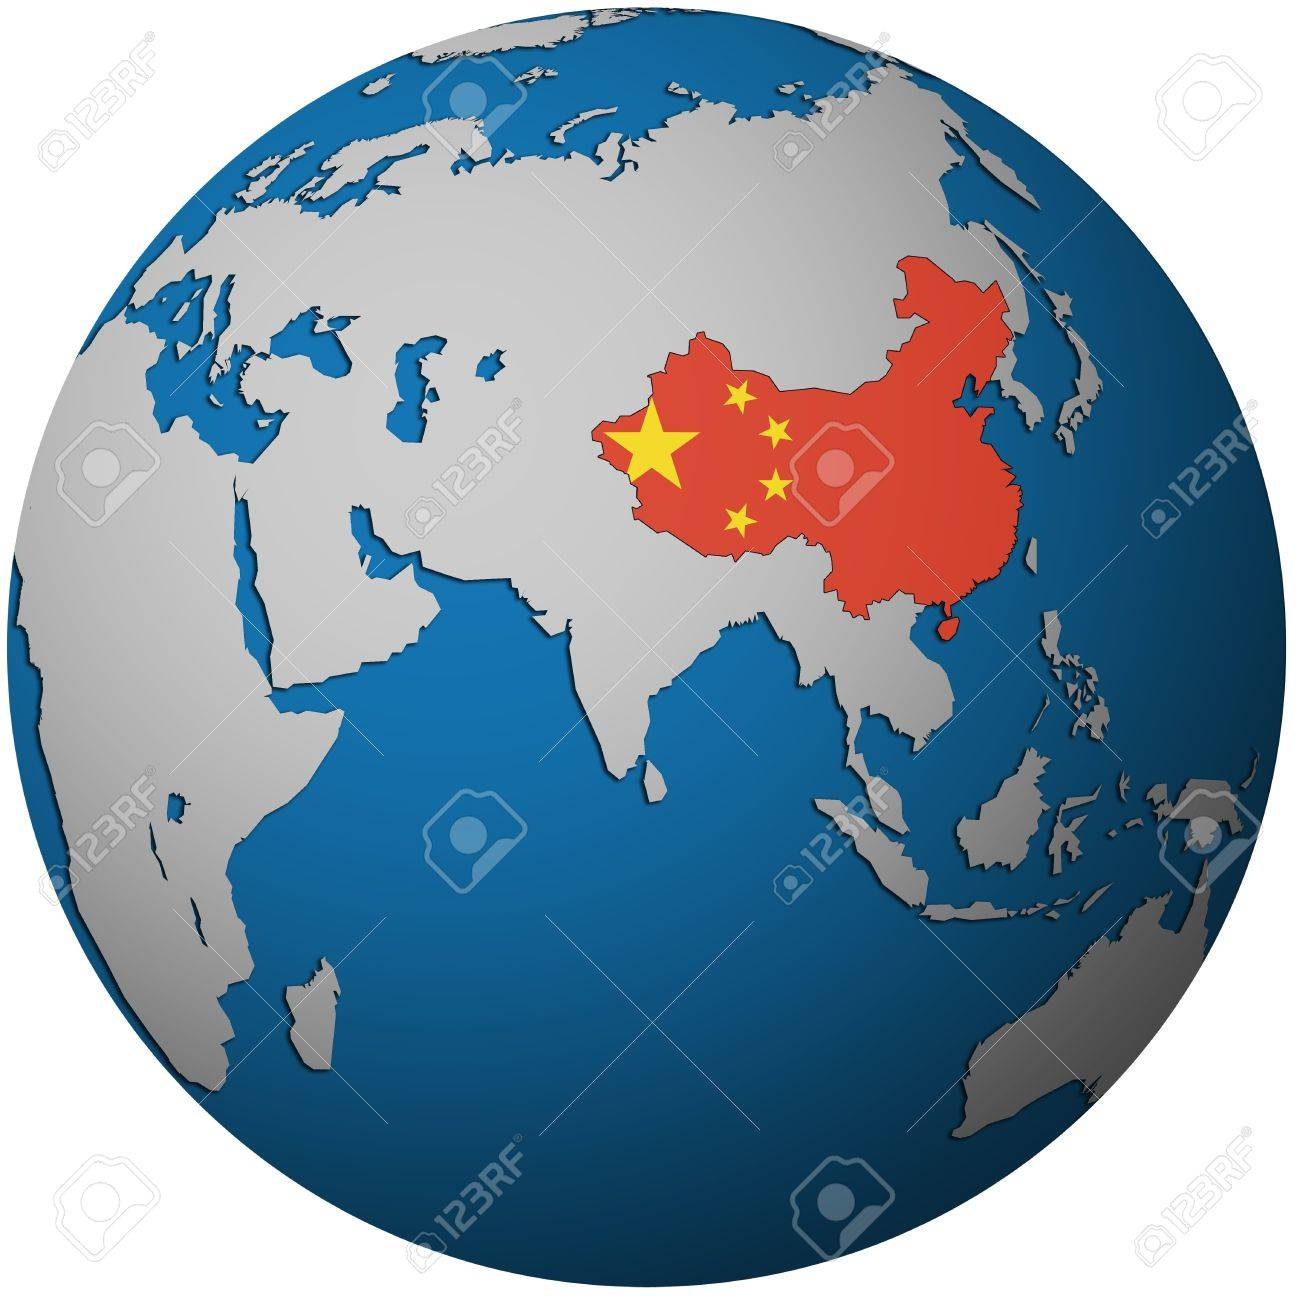 isolated over white territory of china with flag on globe map on chinese language in the world, china map business, china map market, china map art, home in the world, china map india, china map europe, china map design, costa rica in the world, china map easy, china map religion, china map cities, china map love, china map region, china map history,